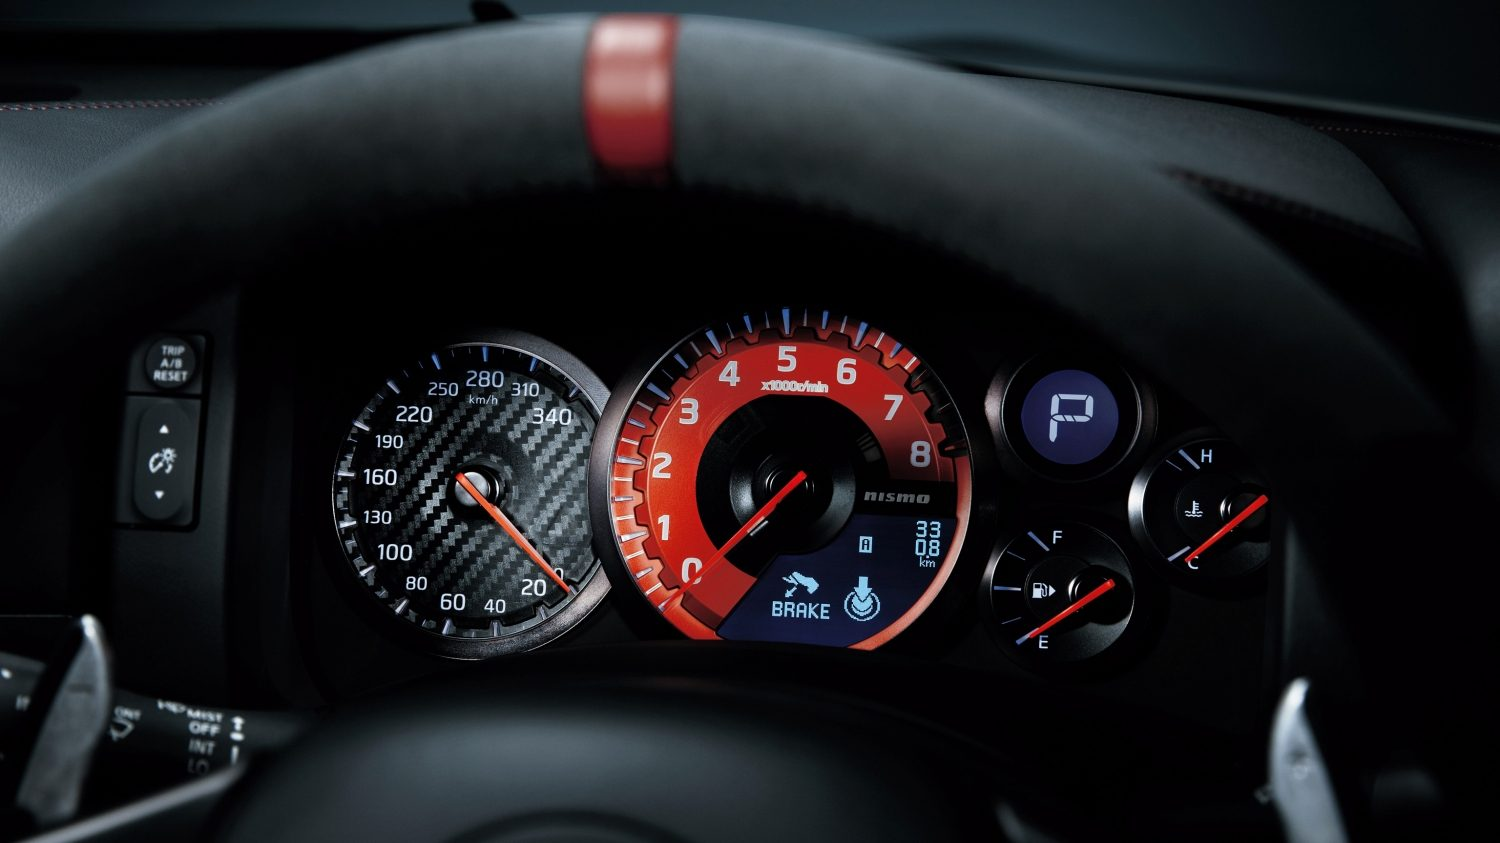 Nissan GT-R - Instrument panel